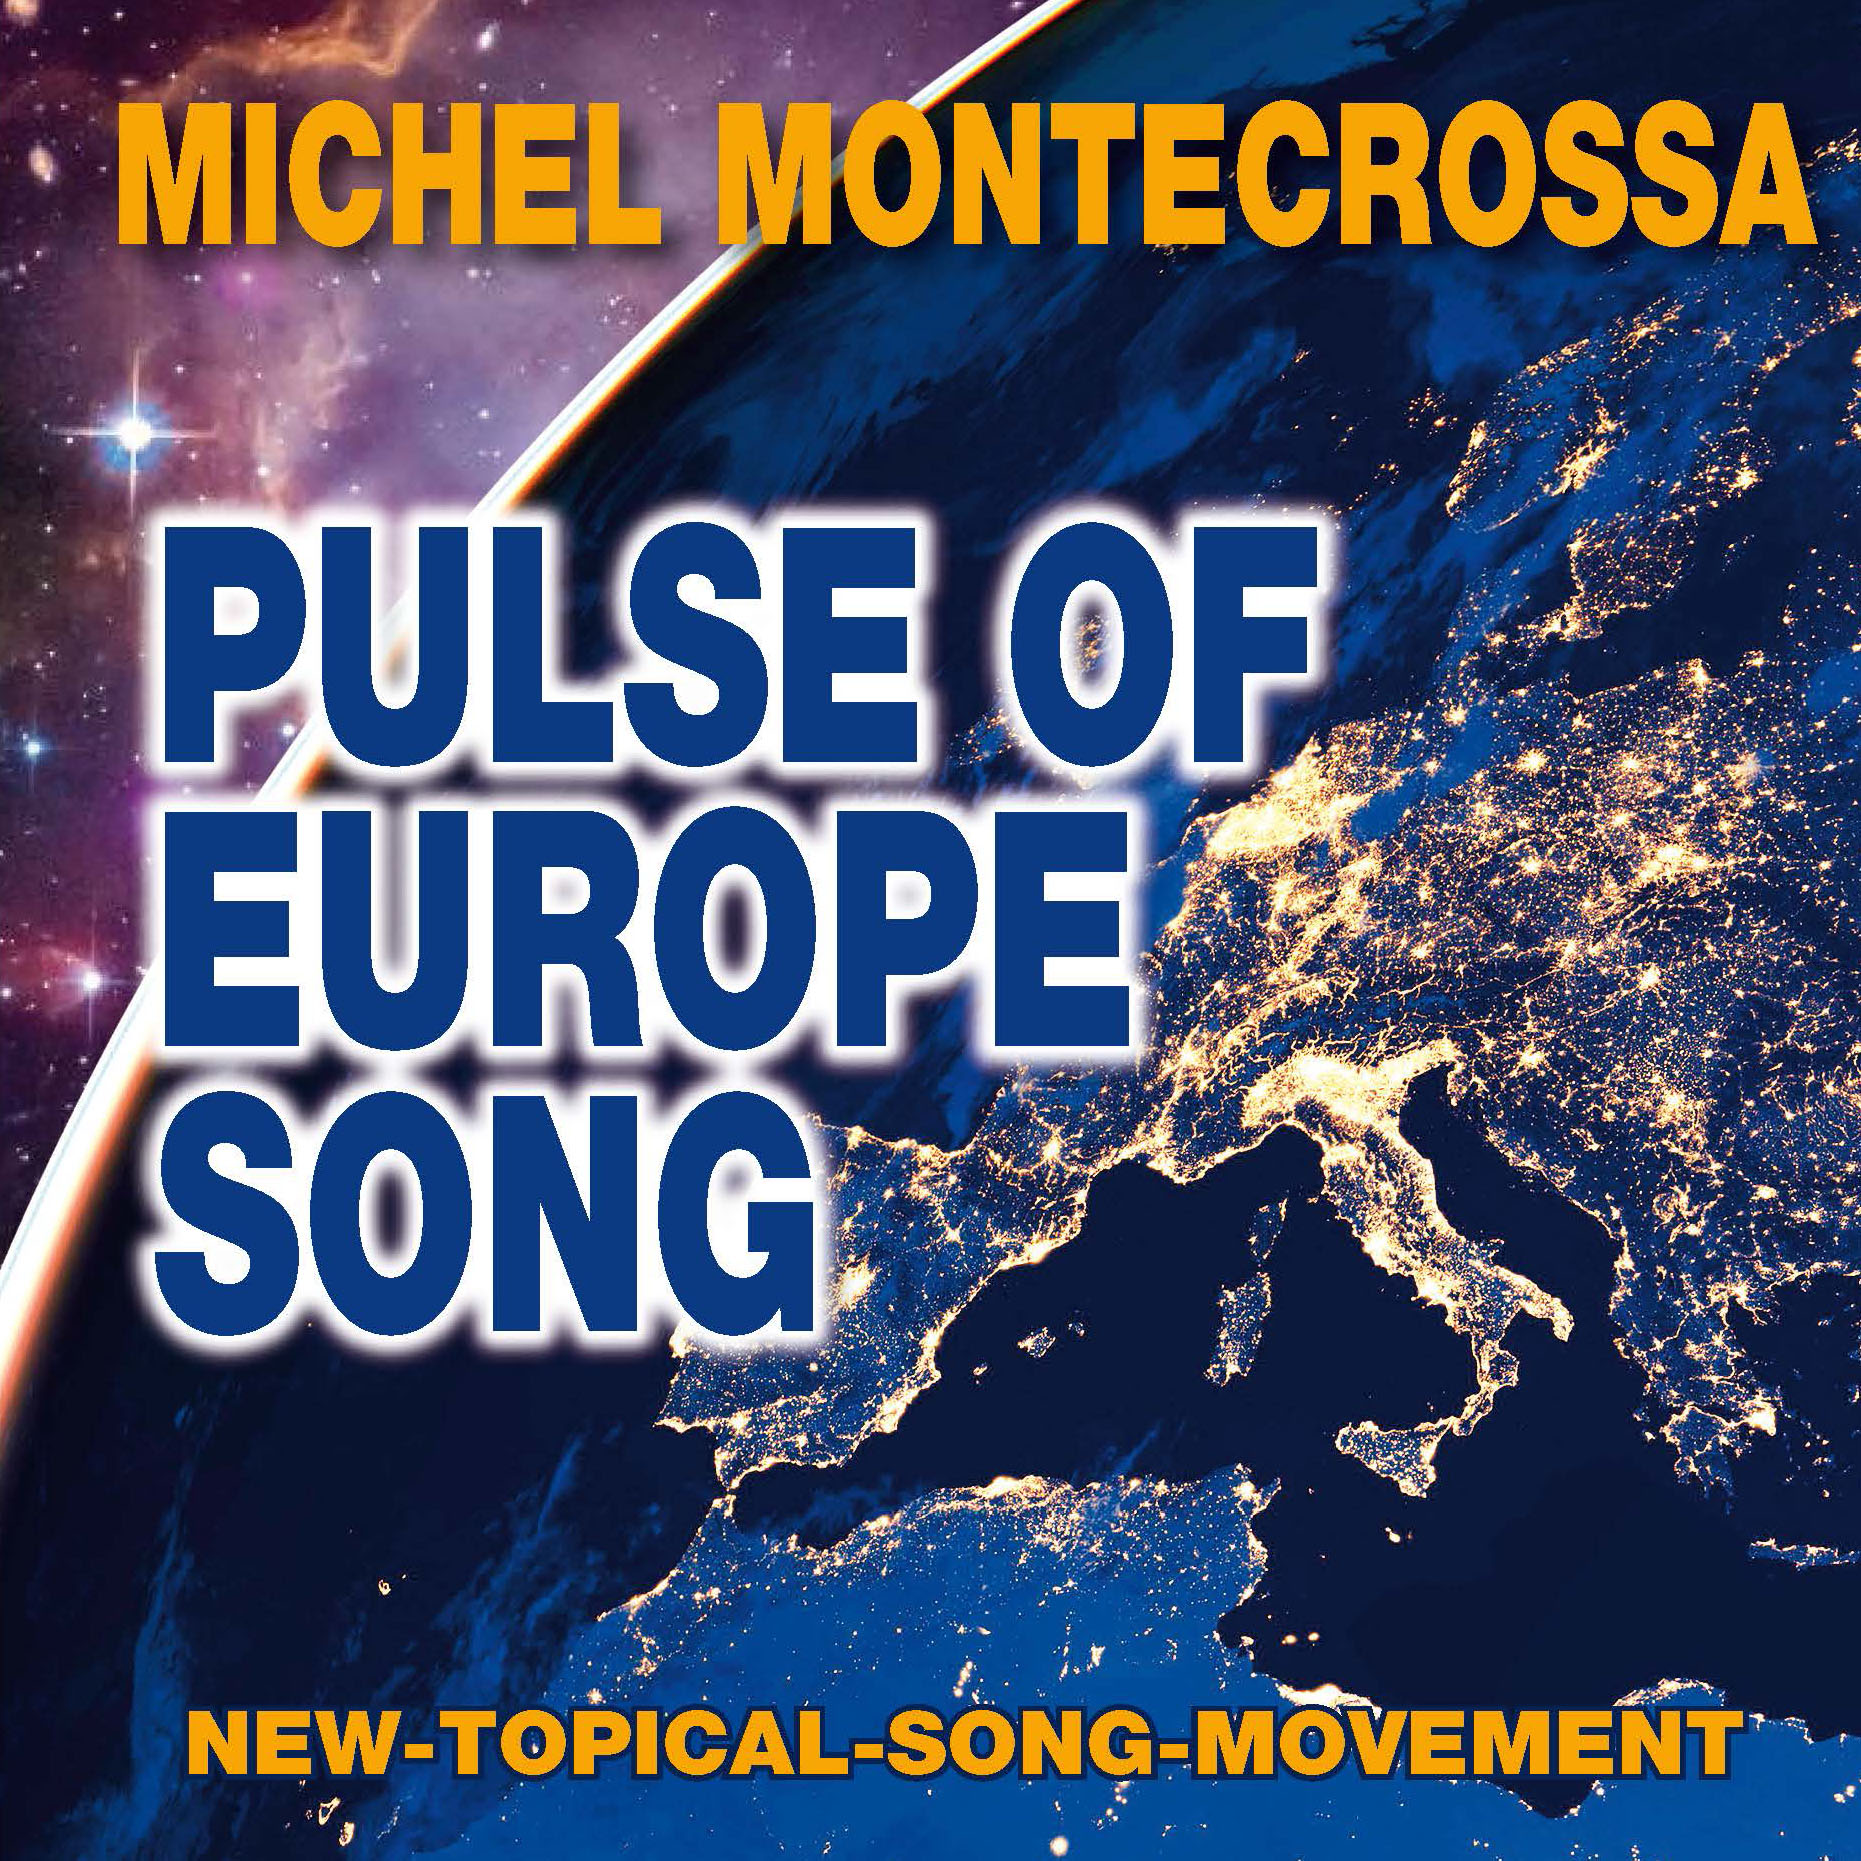 Pulse of Europe Song